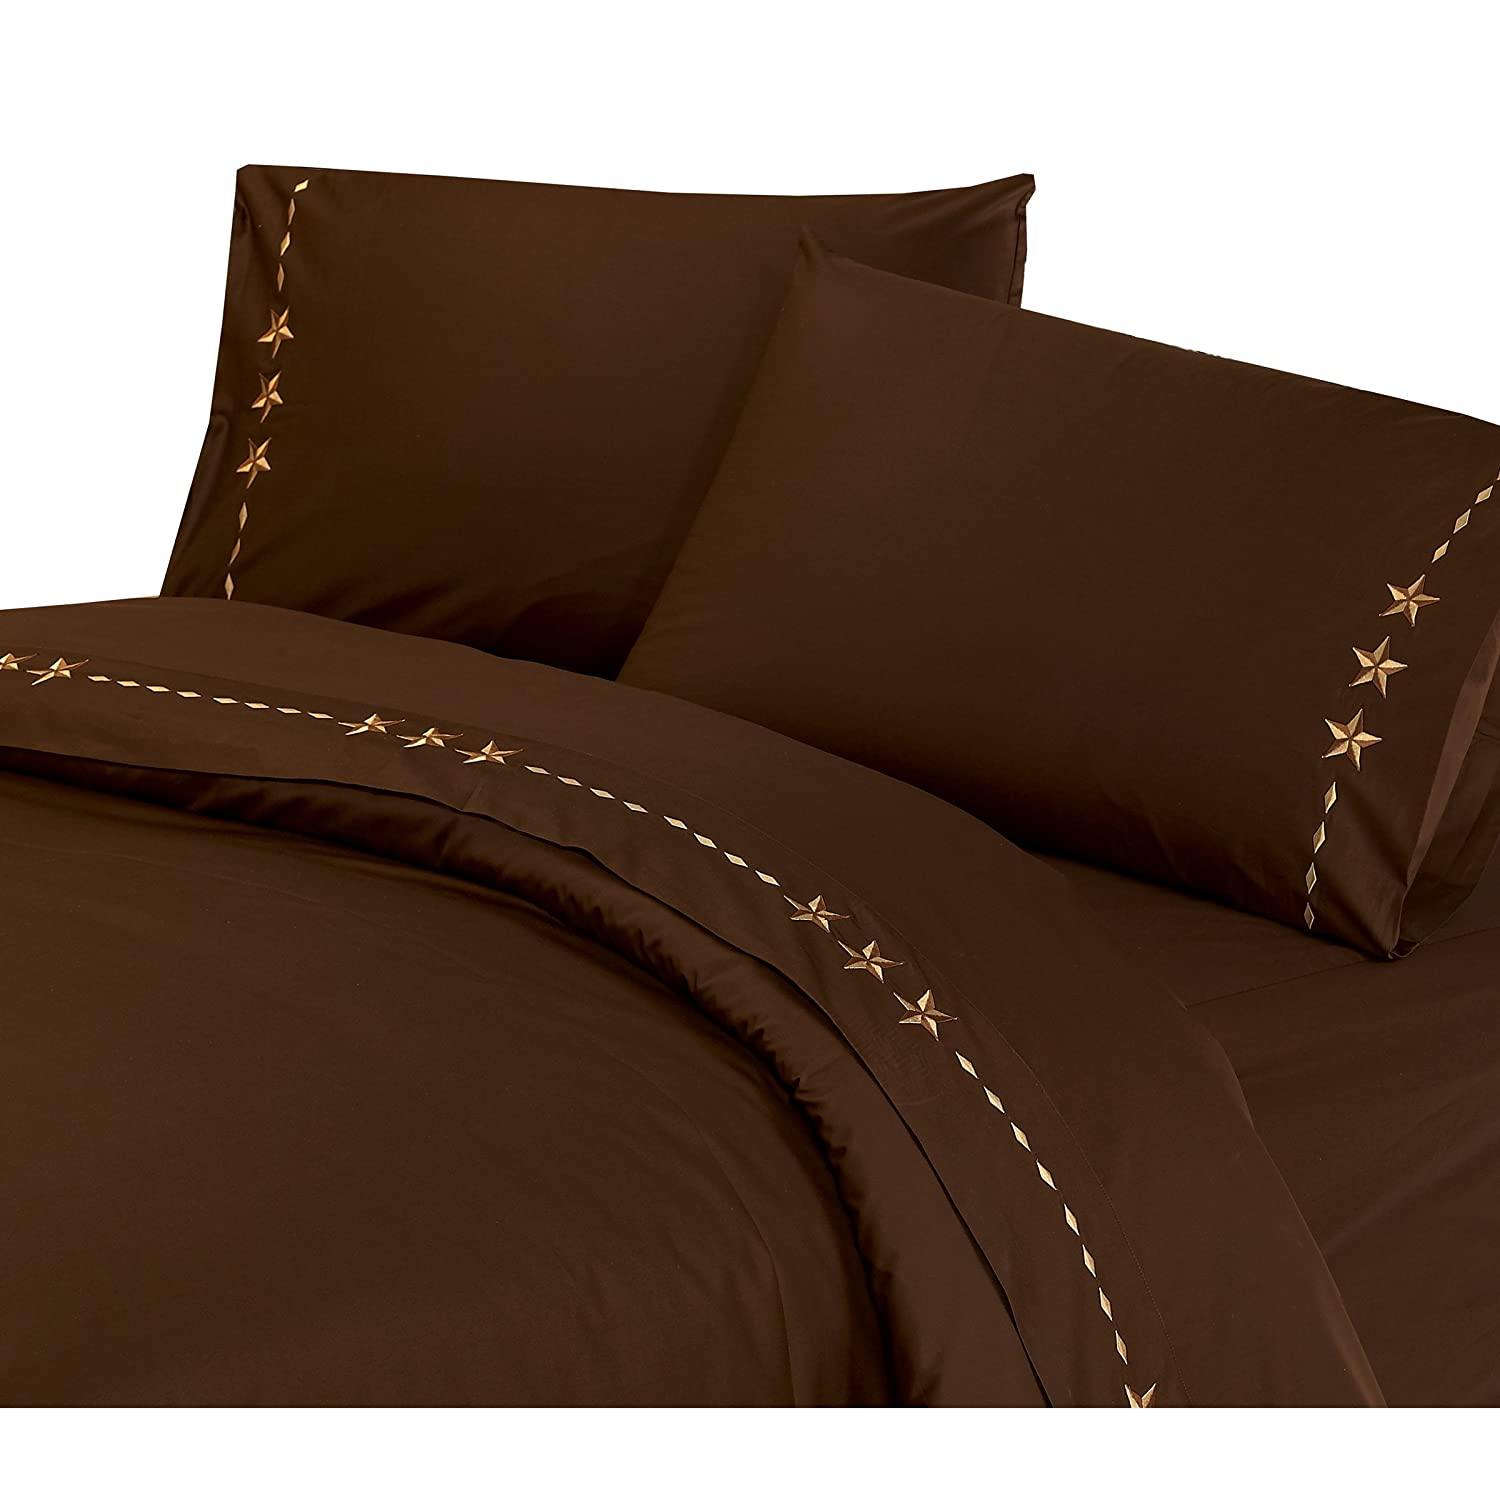 HiEnd Accents Western Embroidered Star Sheet Set Twin Chocolate